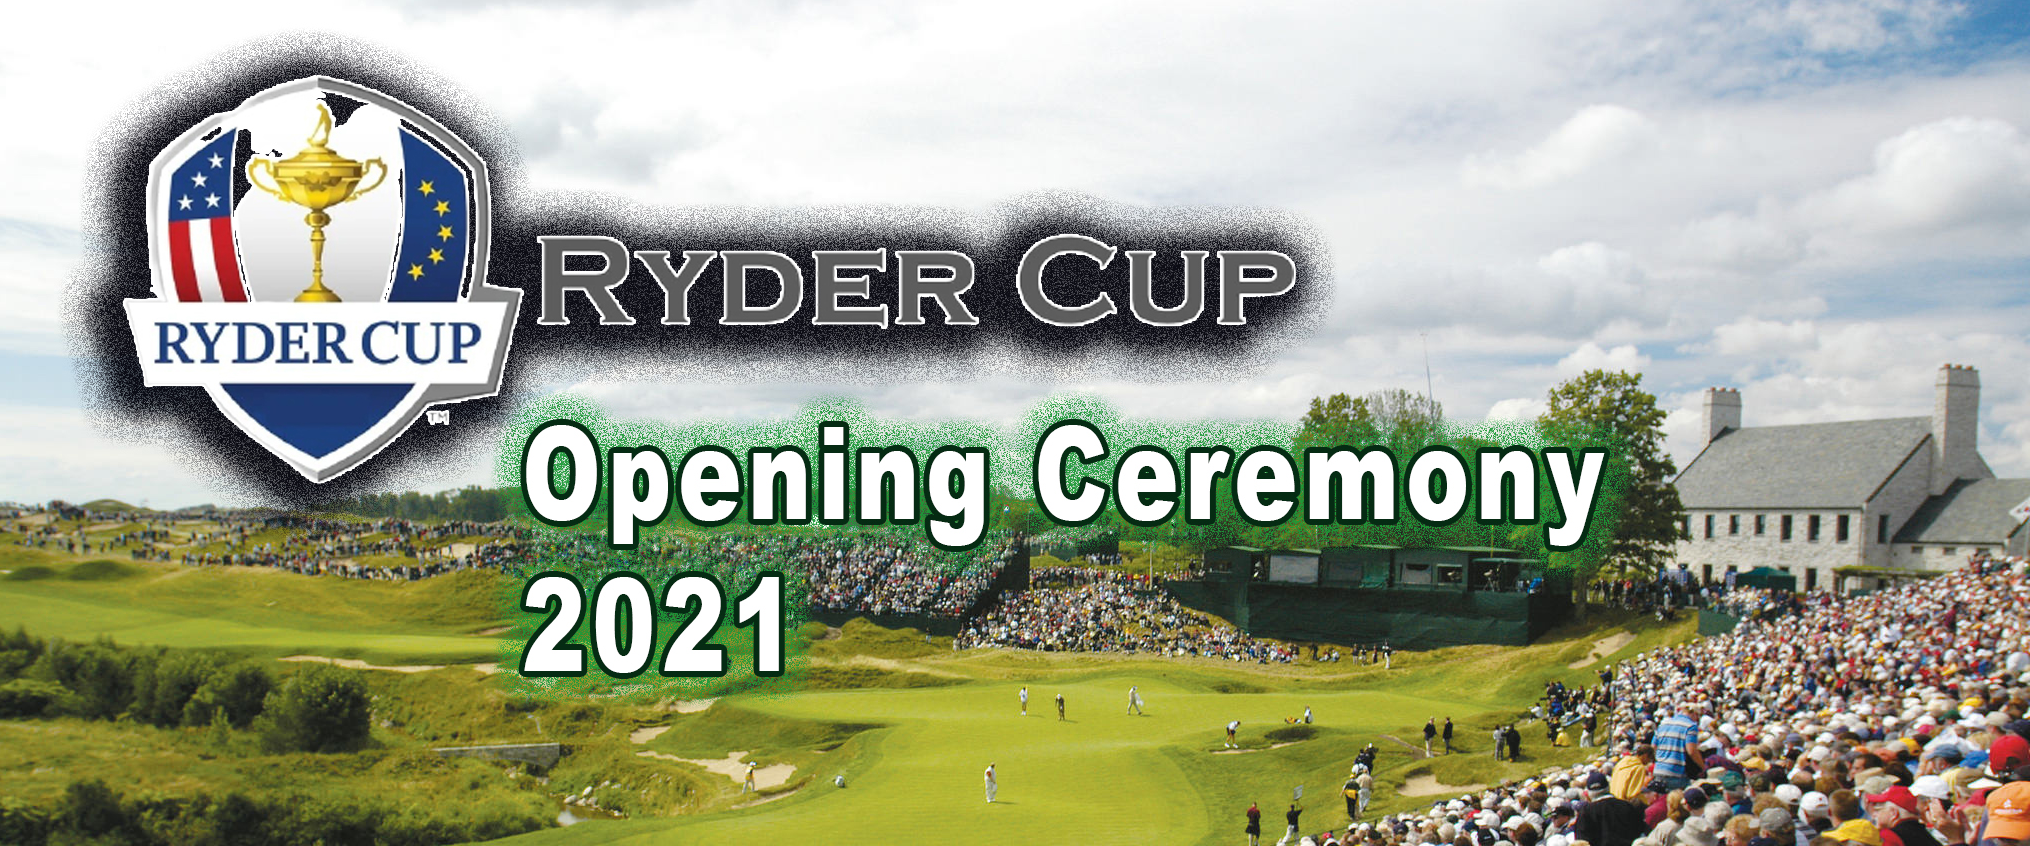 The best of the Opening Ceremony - Ryder Cup Upcoming 2021